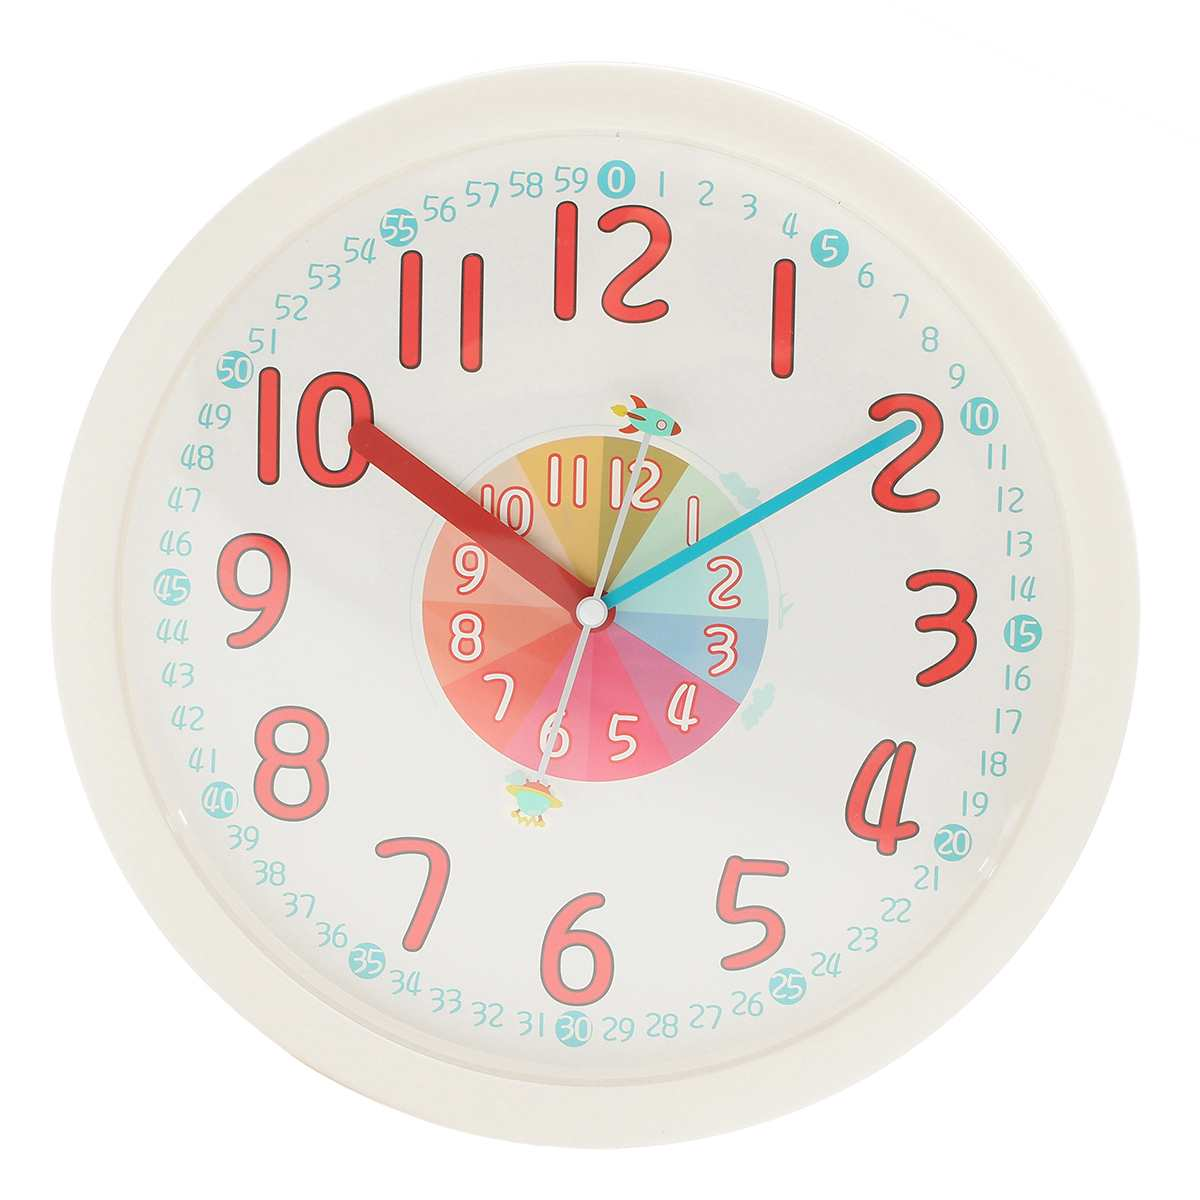 US $18.37 51% OFF Kids Wall Clock Silent Easily learn Time Colorful  Decorative home children room Classroom 12 inch Best Gift Battery-in Wall  Clocks ...